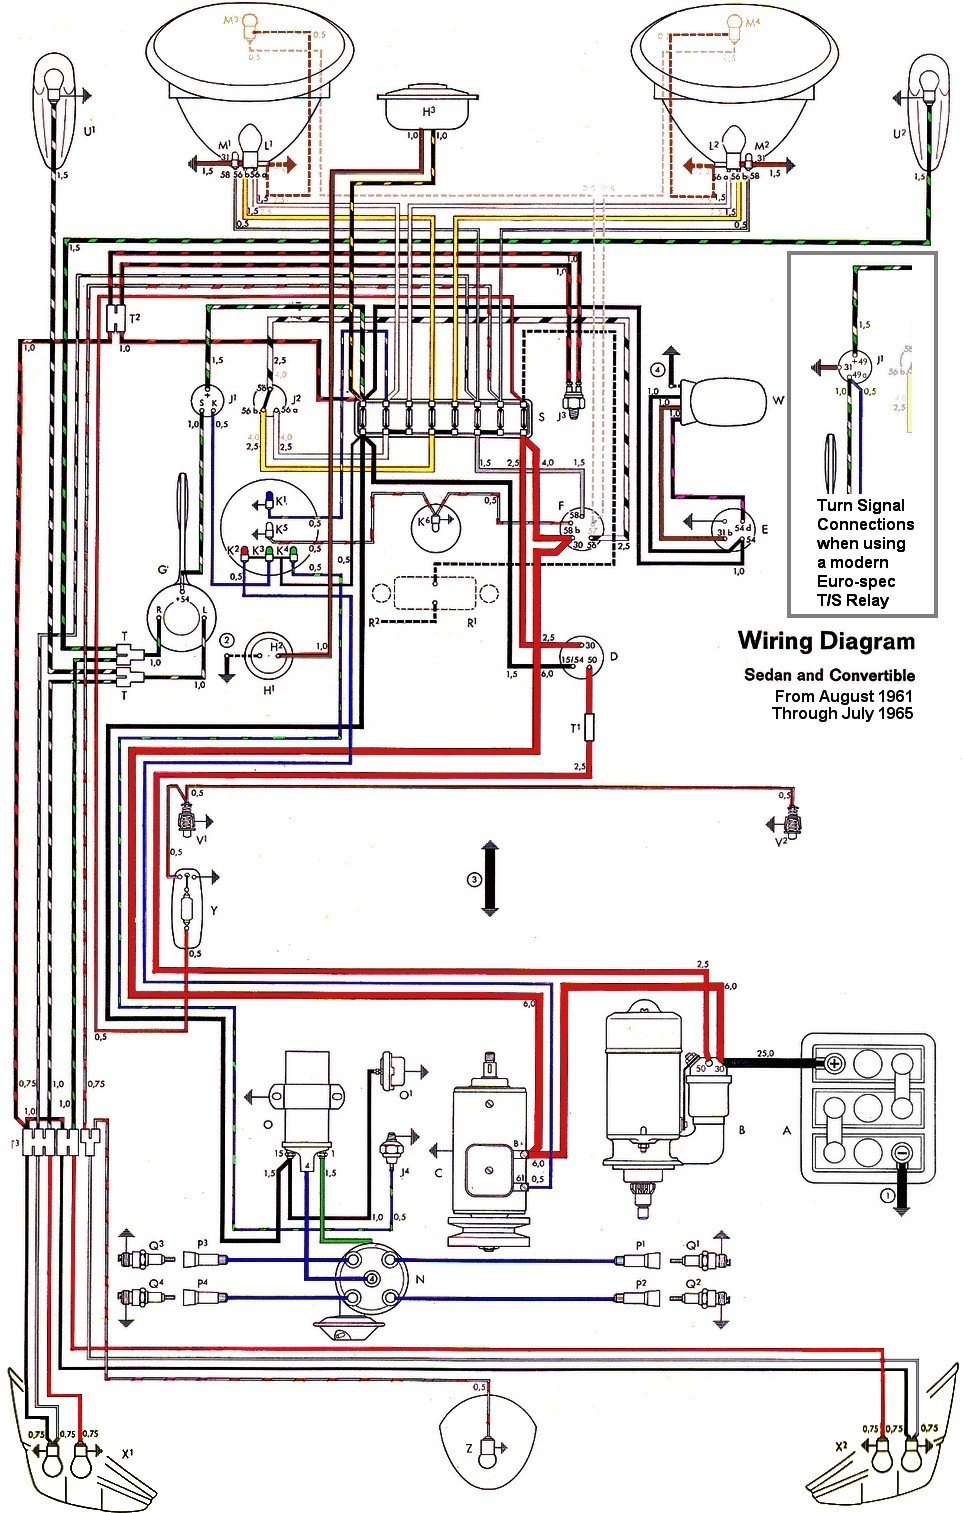 bug_62 65withinset wiring diagram database \u2022 limouge co  at mr168.co